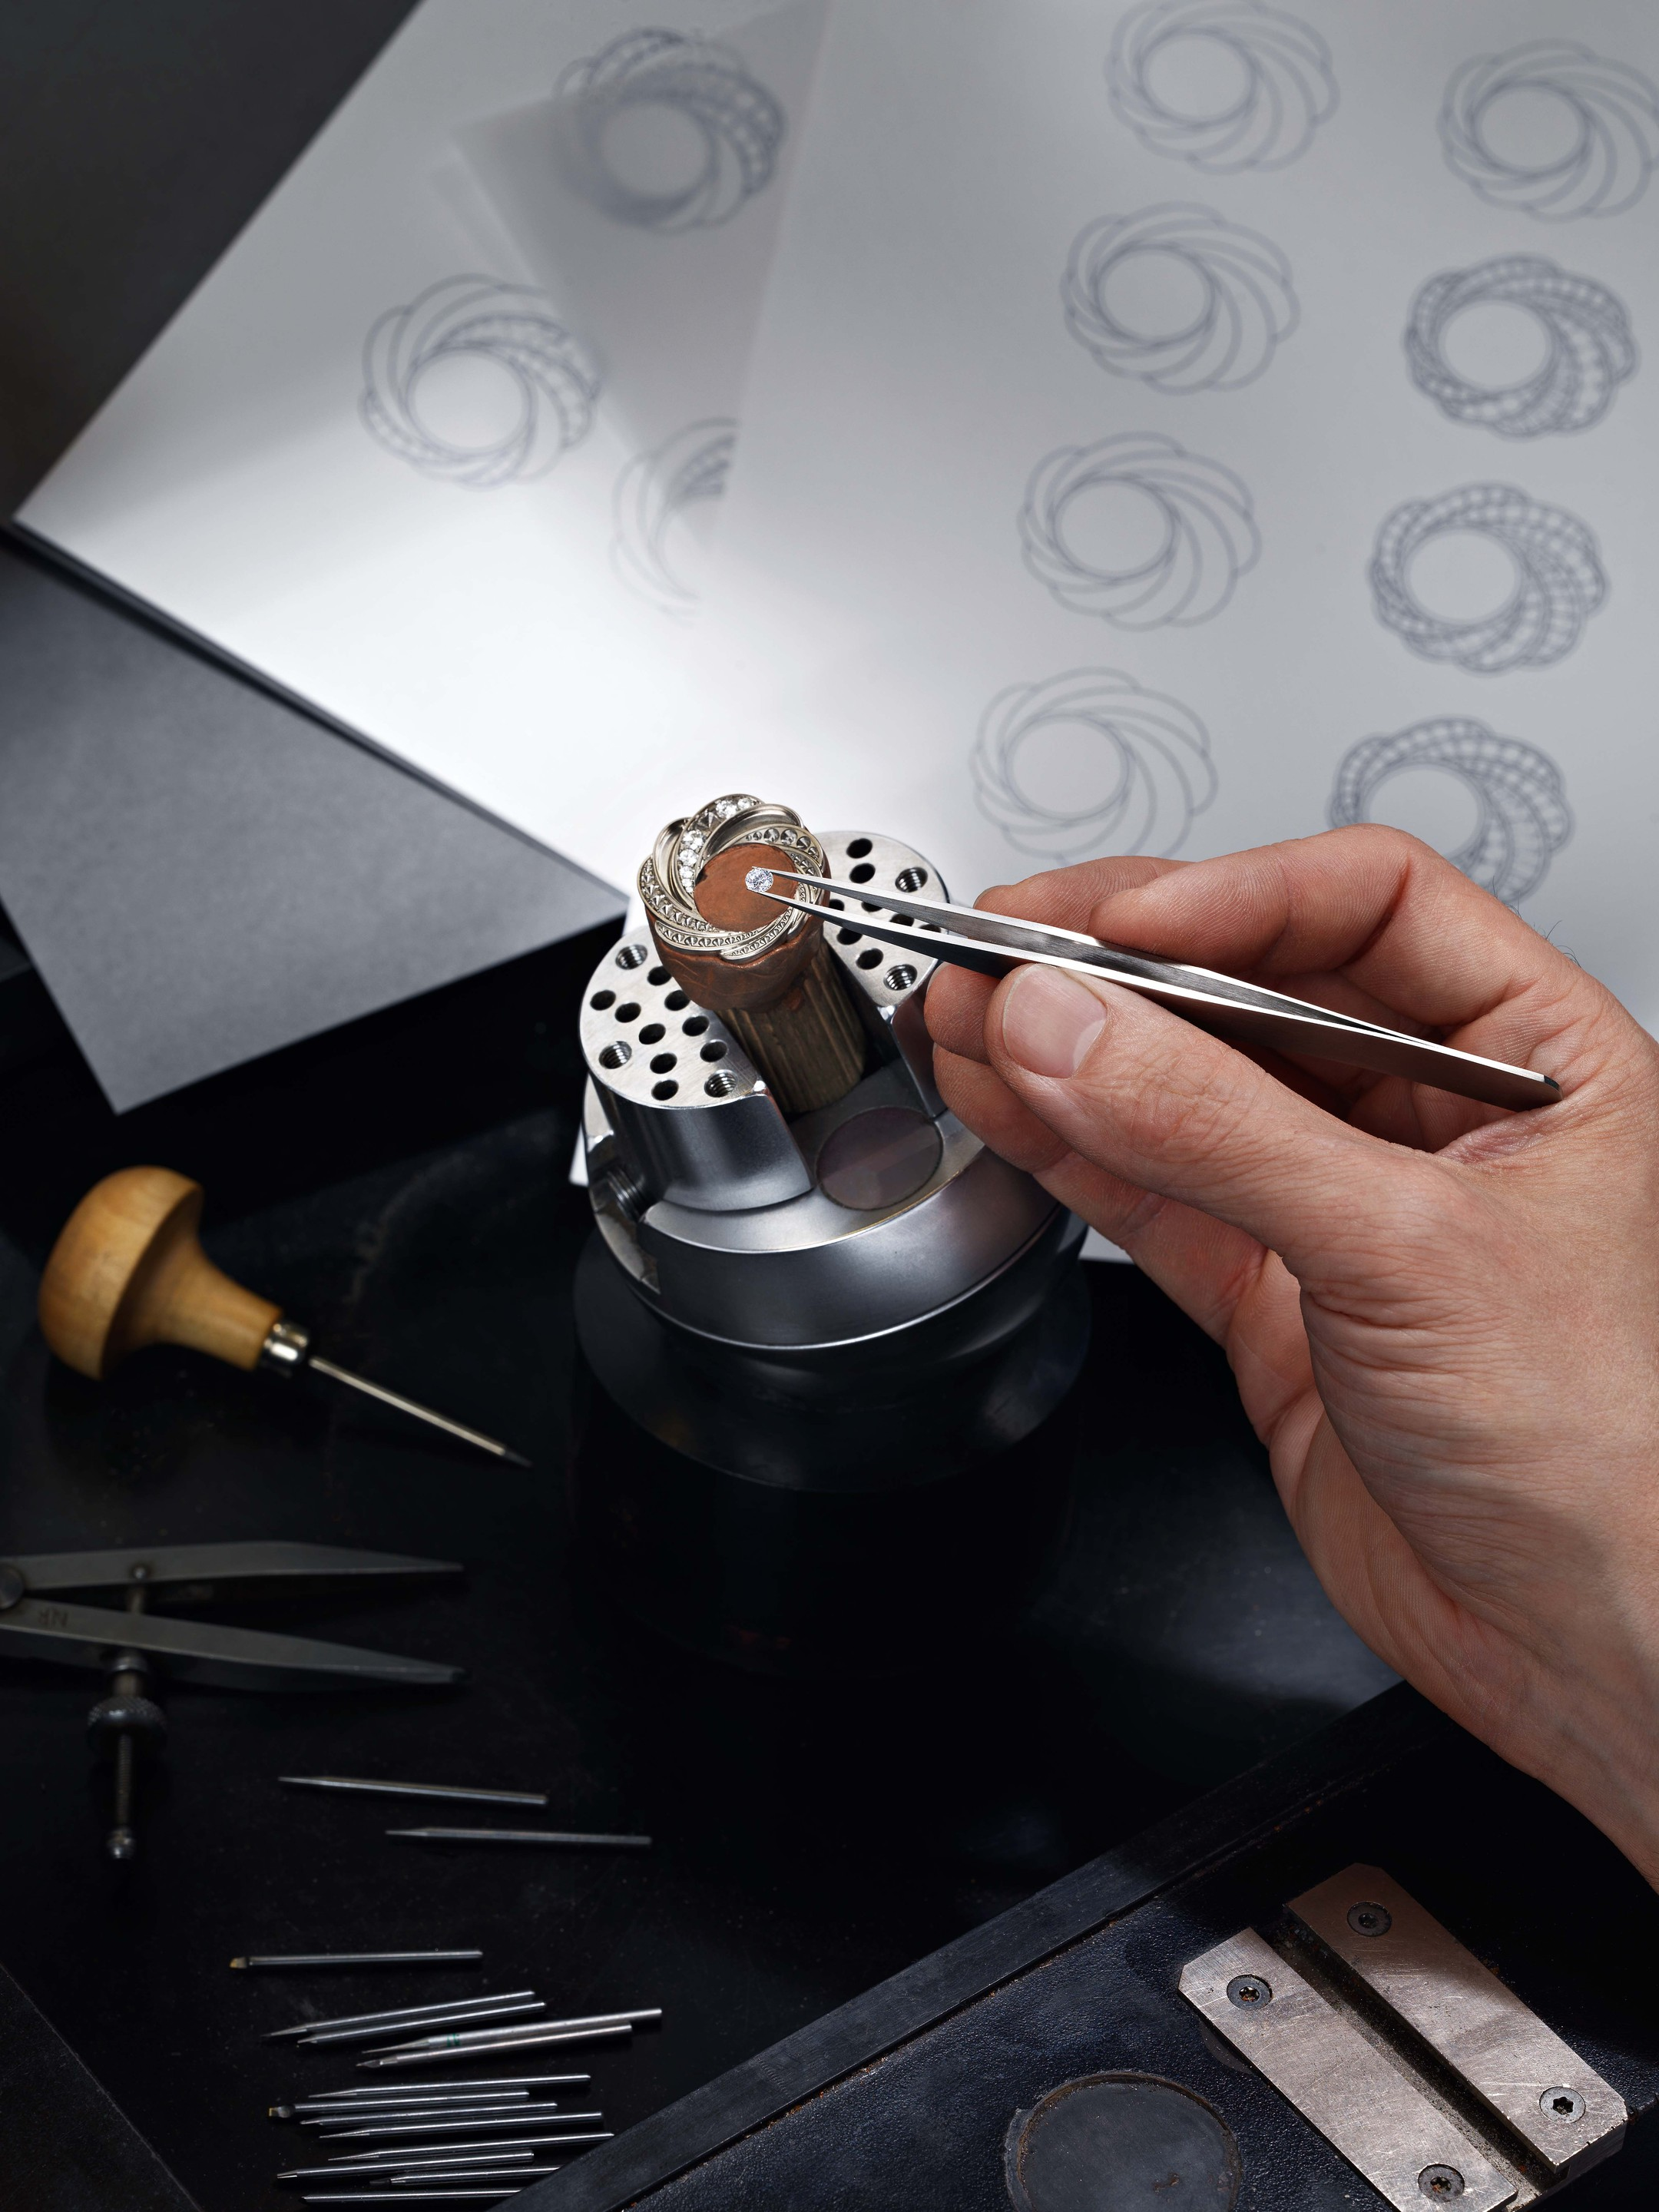 A master craftsman meticulously sets each diamond by hand based on sketches of the swirling Aria design for the new De Beers watches.